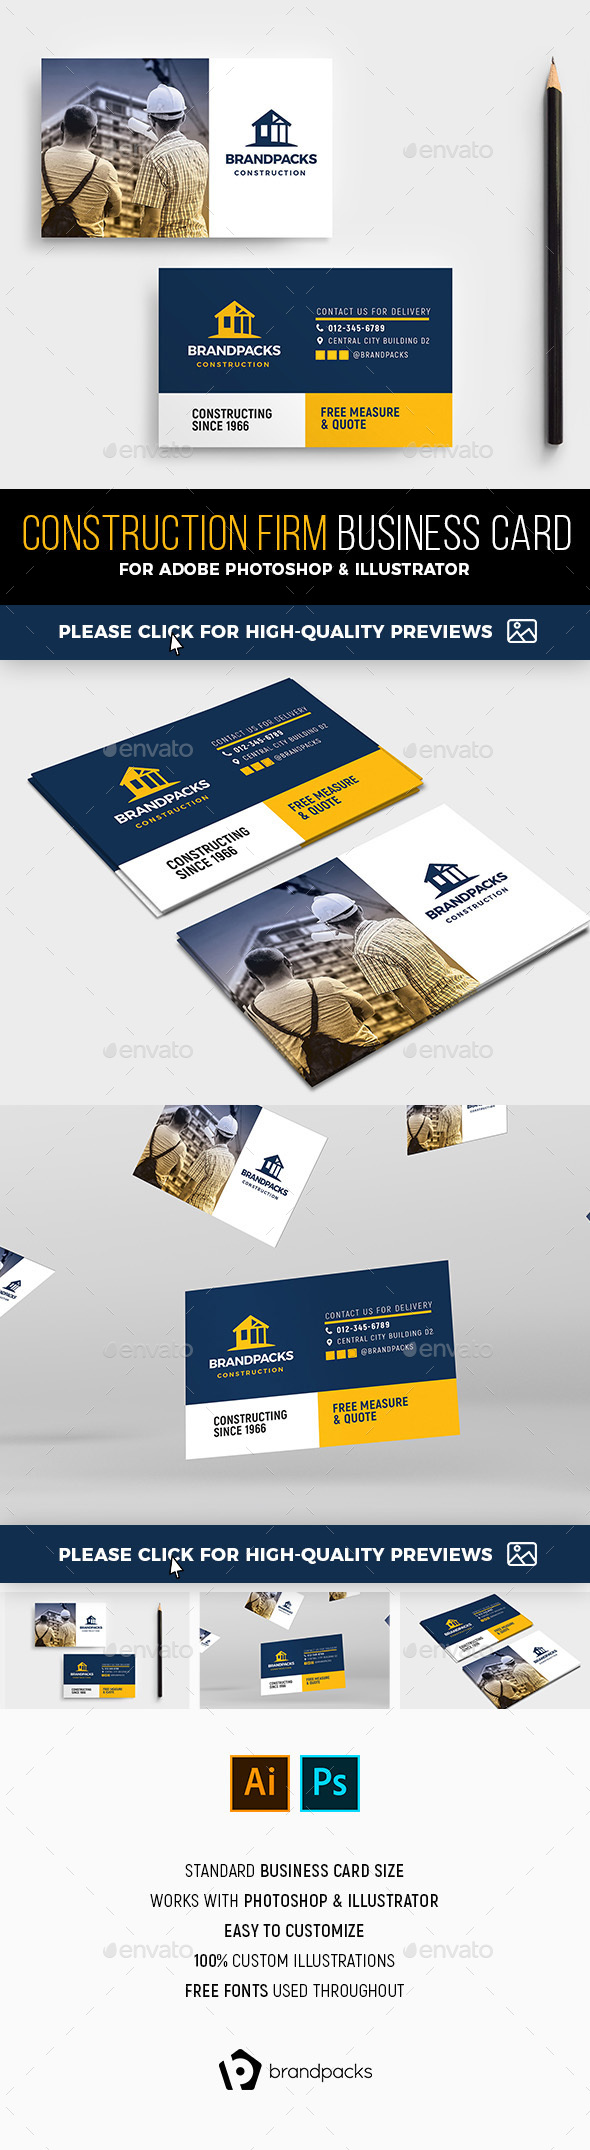 Construction Business Card Template - Industry Specific Business Cards